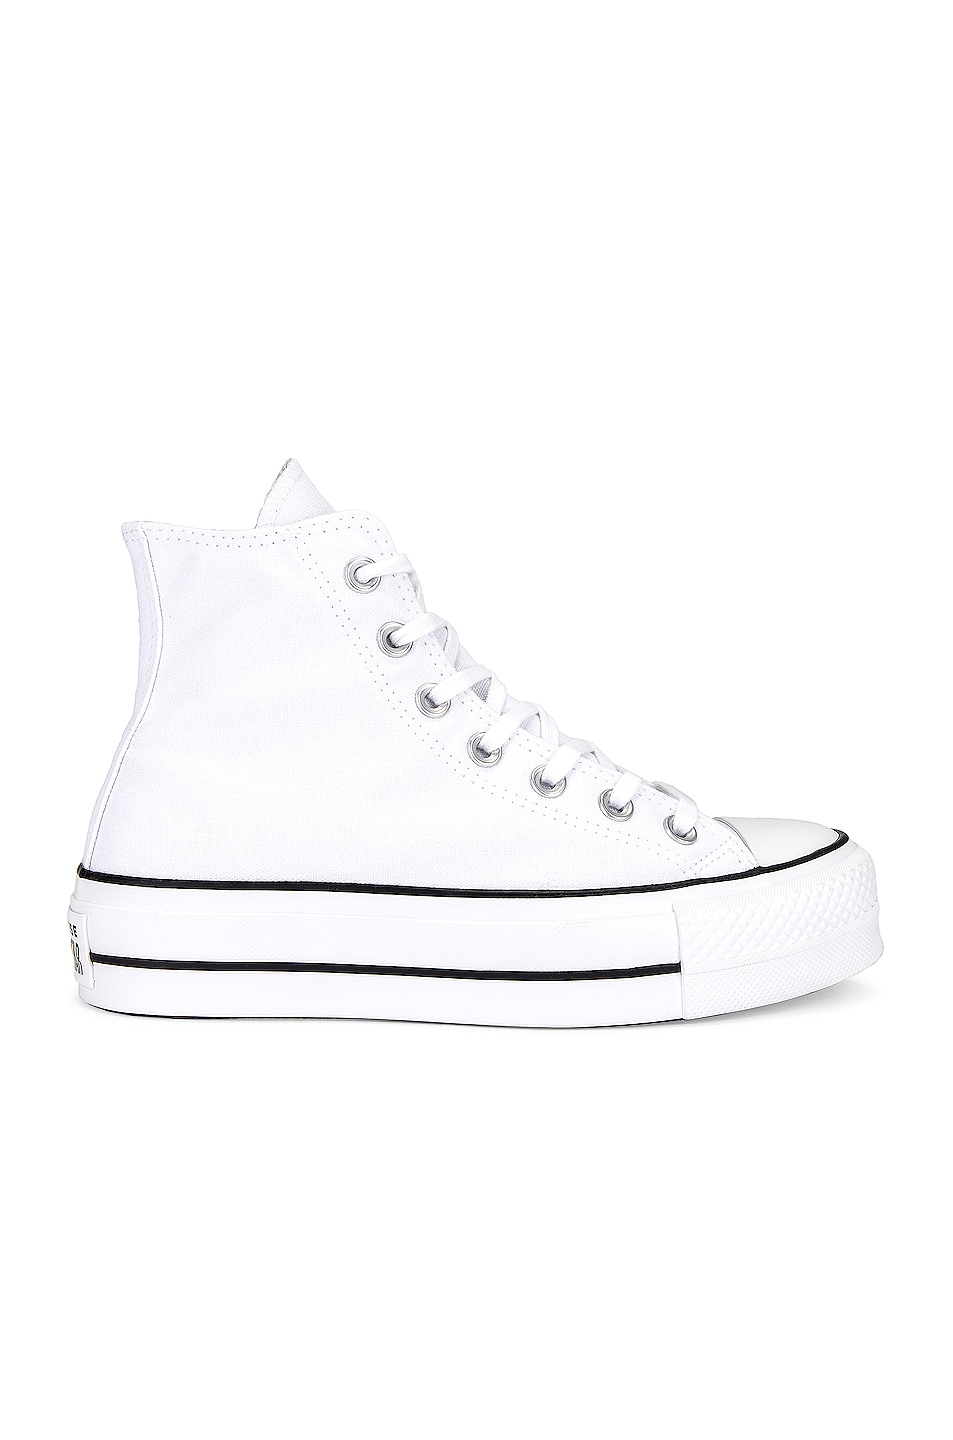 Image 1 of Converse Chuck Taylor All Star Lift Hi in White